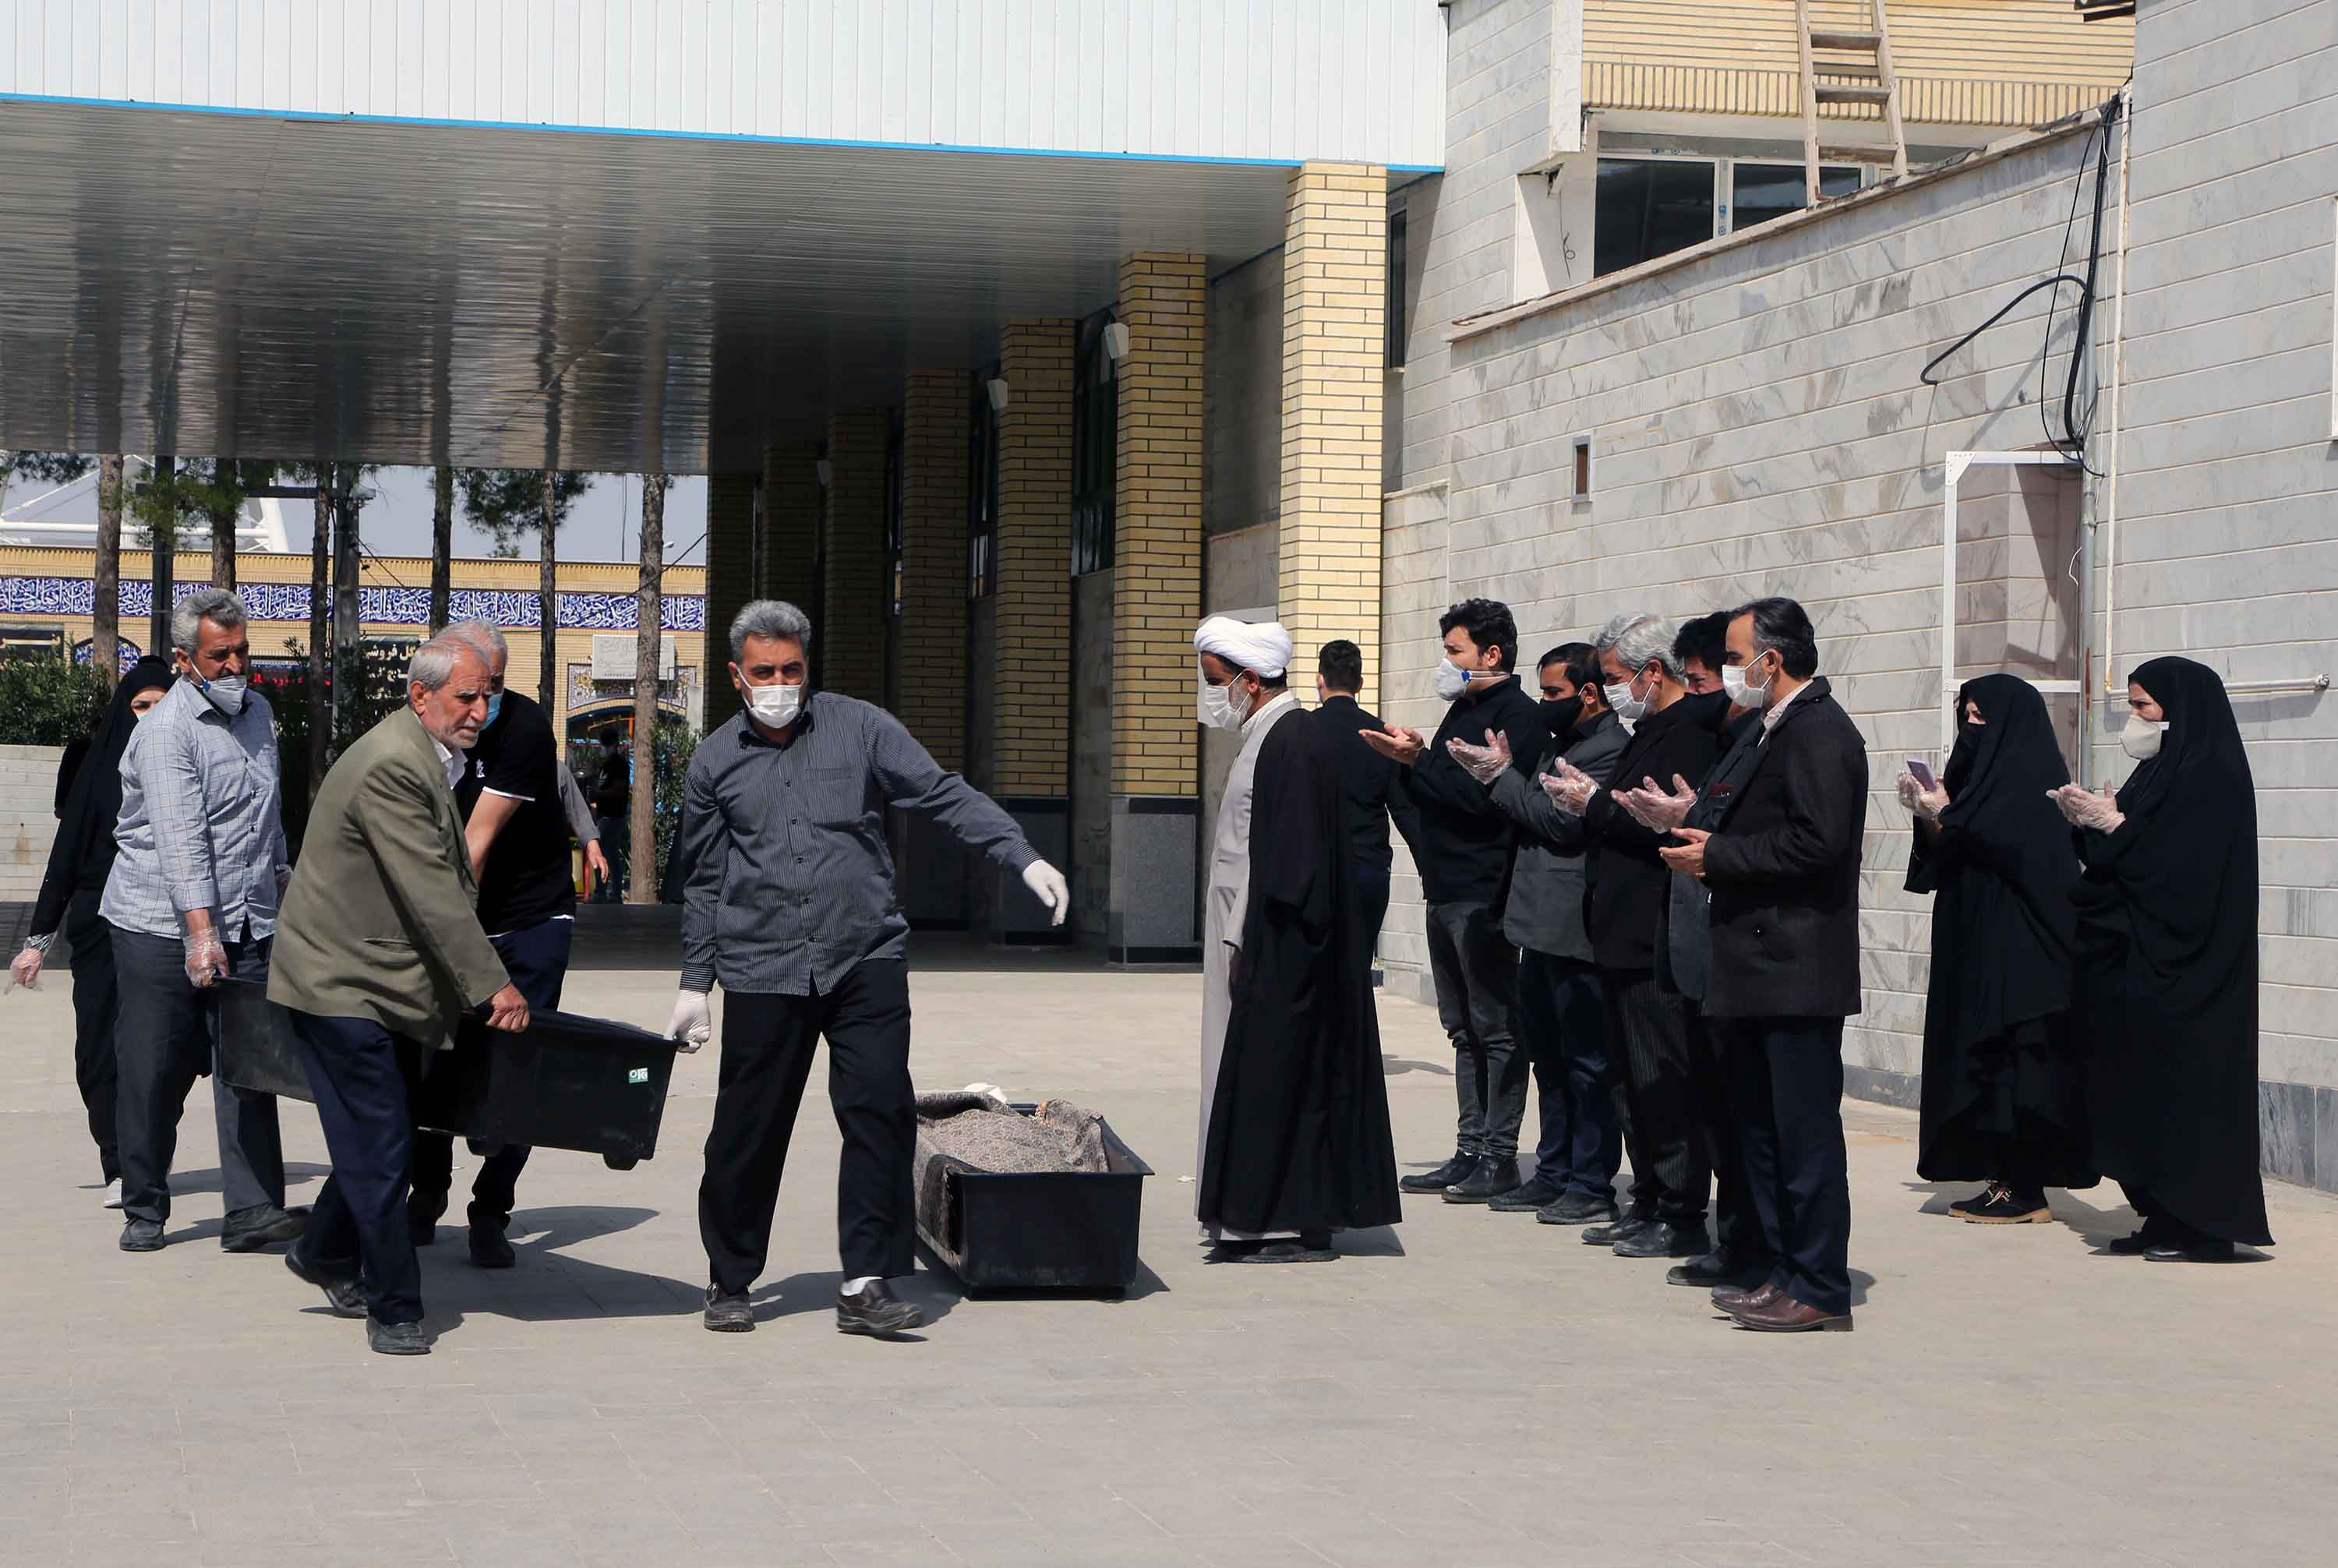 Funeral prayers are performed at Beheshte Masoumeh Cemetery for victims of the coronavirus outbreak in Qom, Iran on March 17.